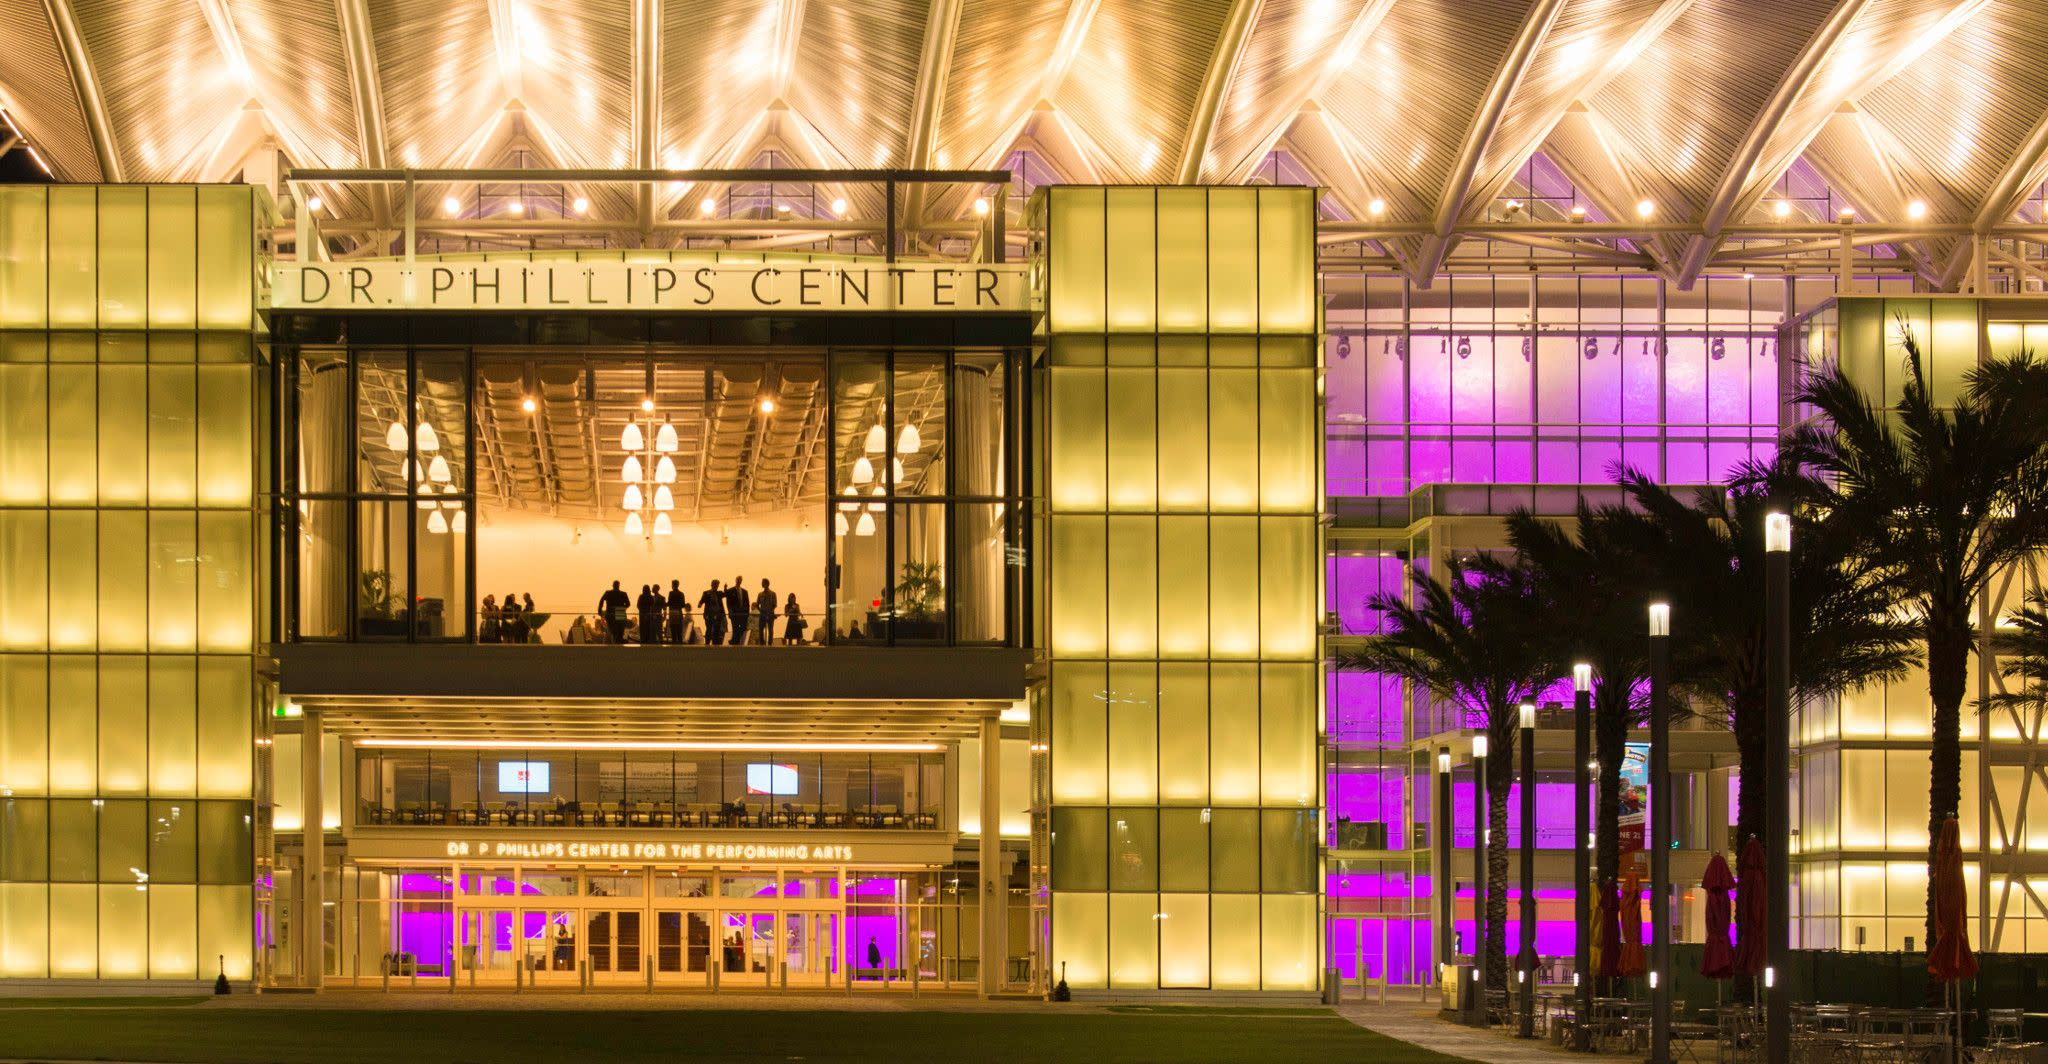 Dr. Phillips Center for the Performing Arts in Downtown Orlando